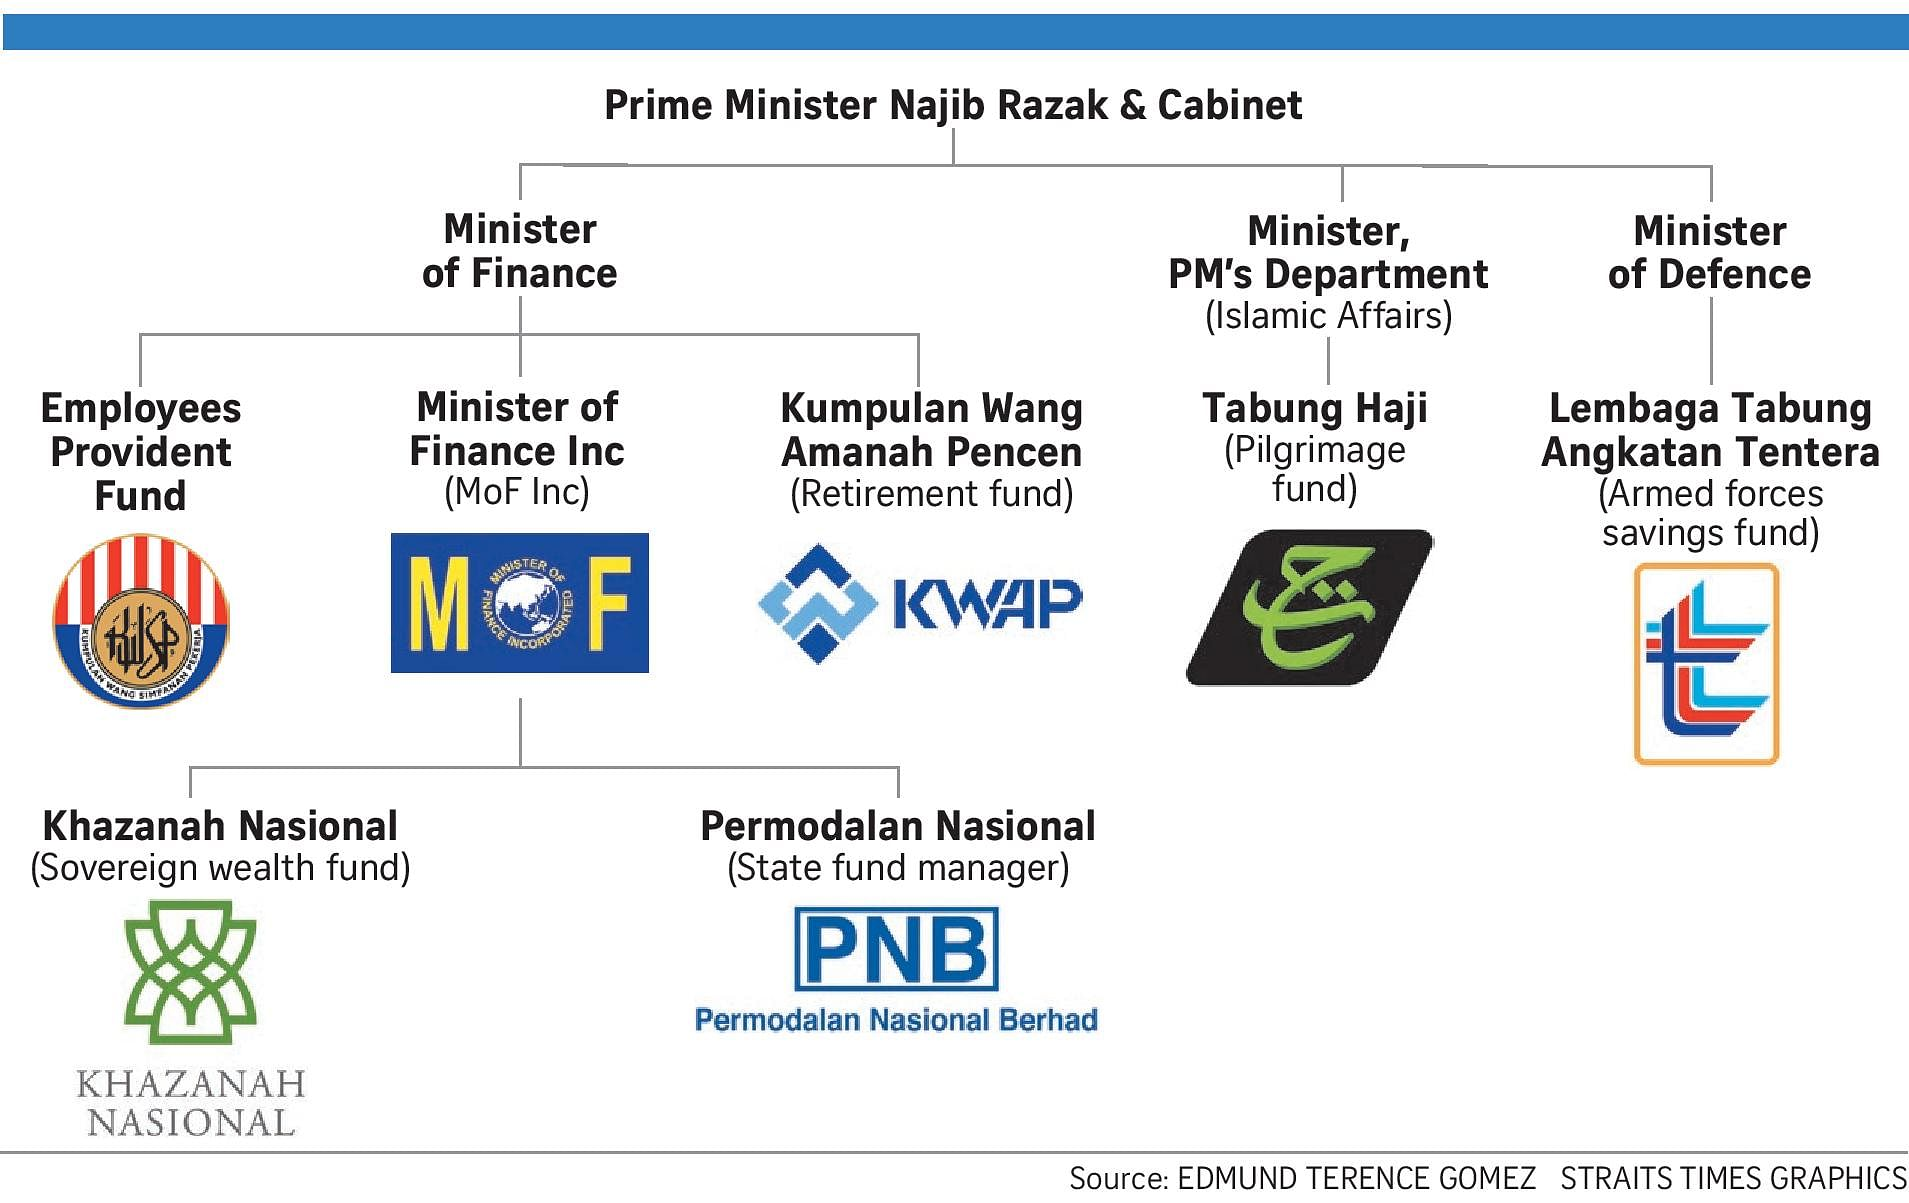 Najib S Hold On Finances Helping Him Stay In Power Se Asia News Top Stories The Straits Times